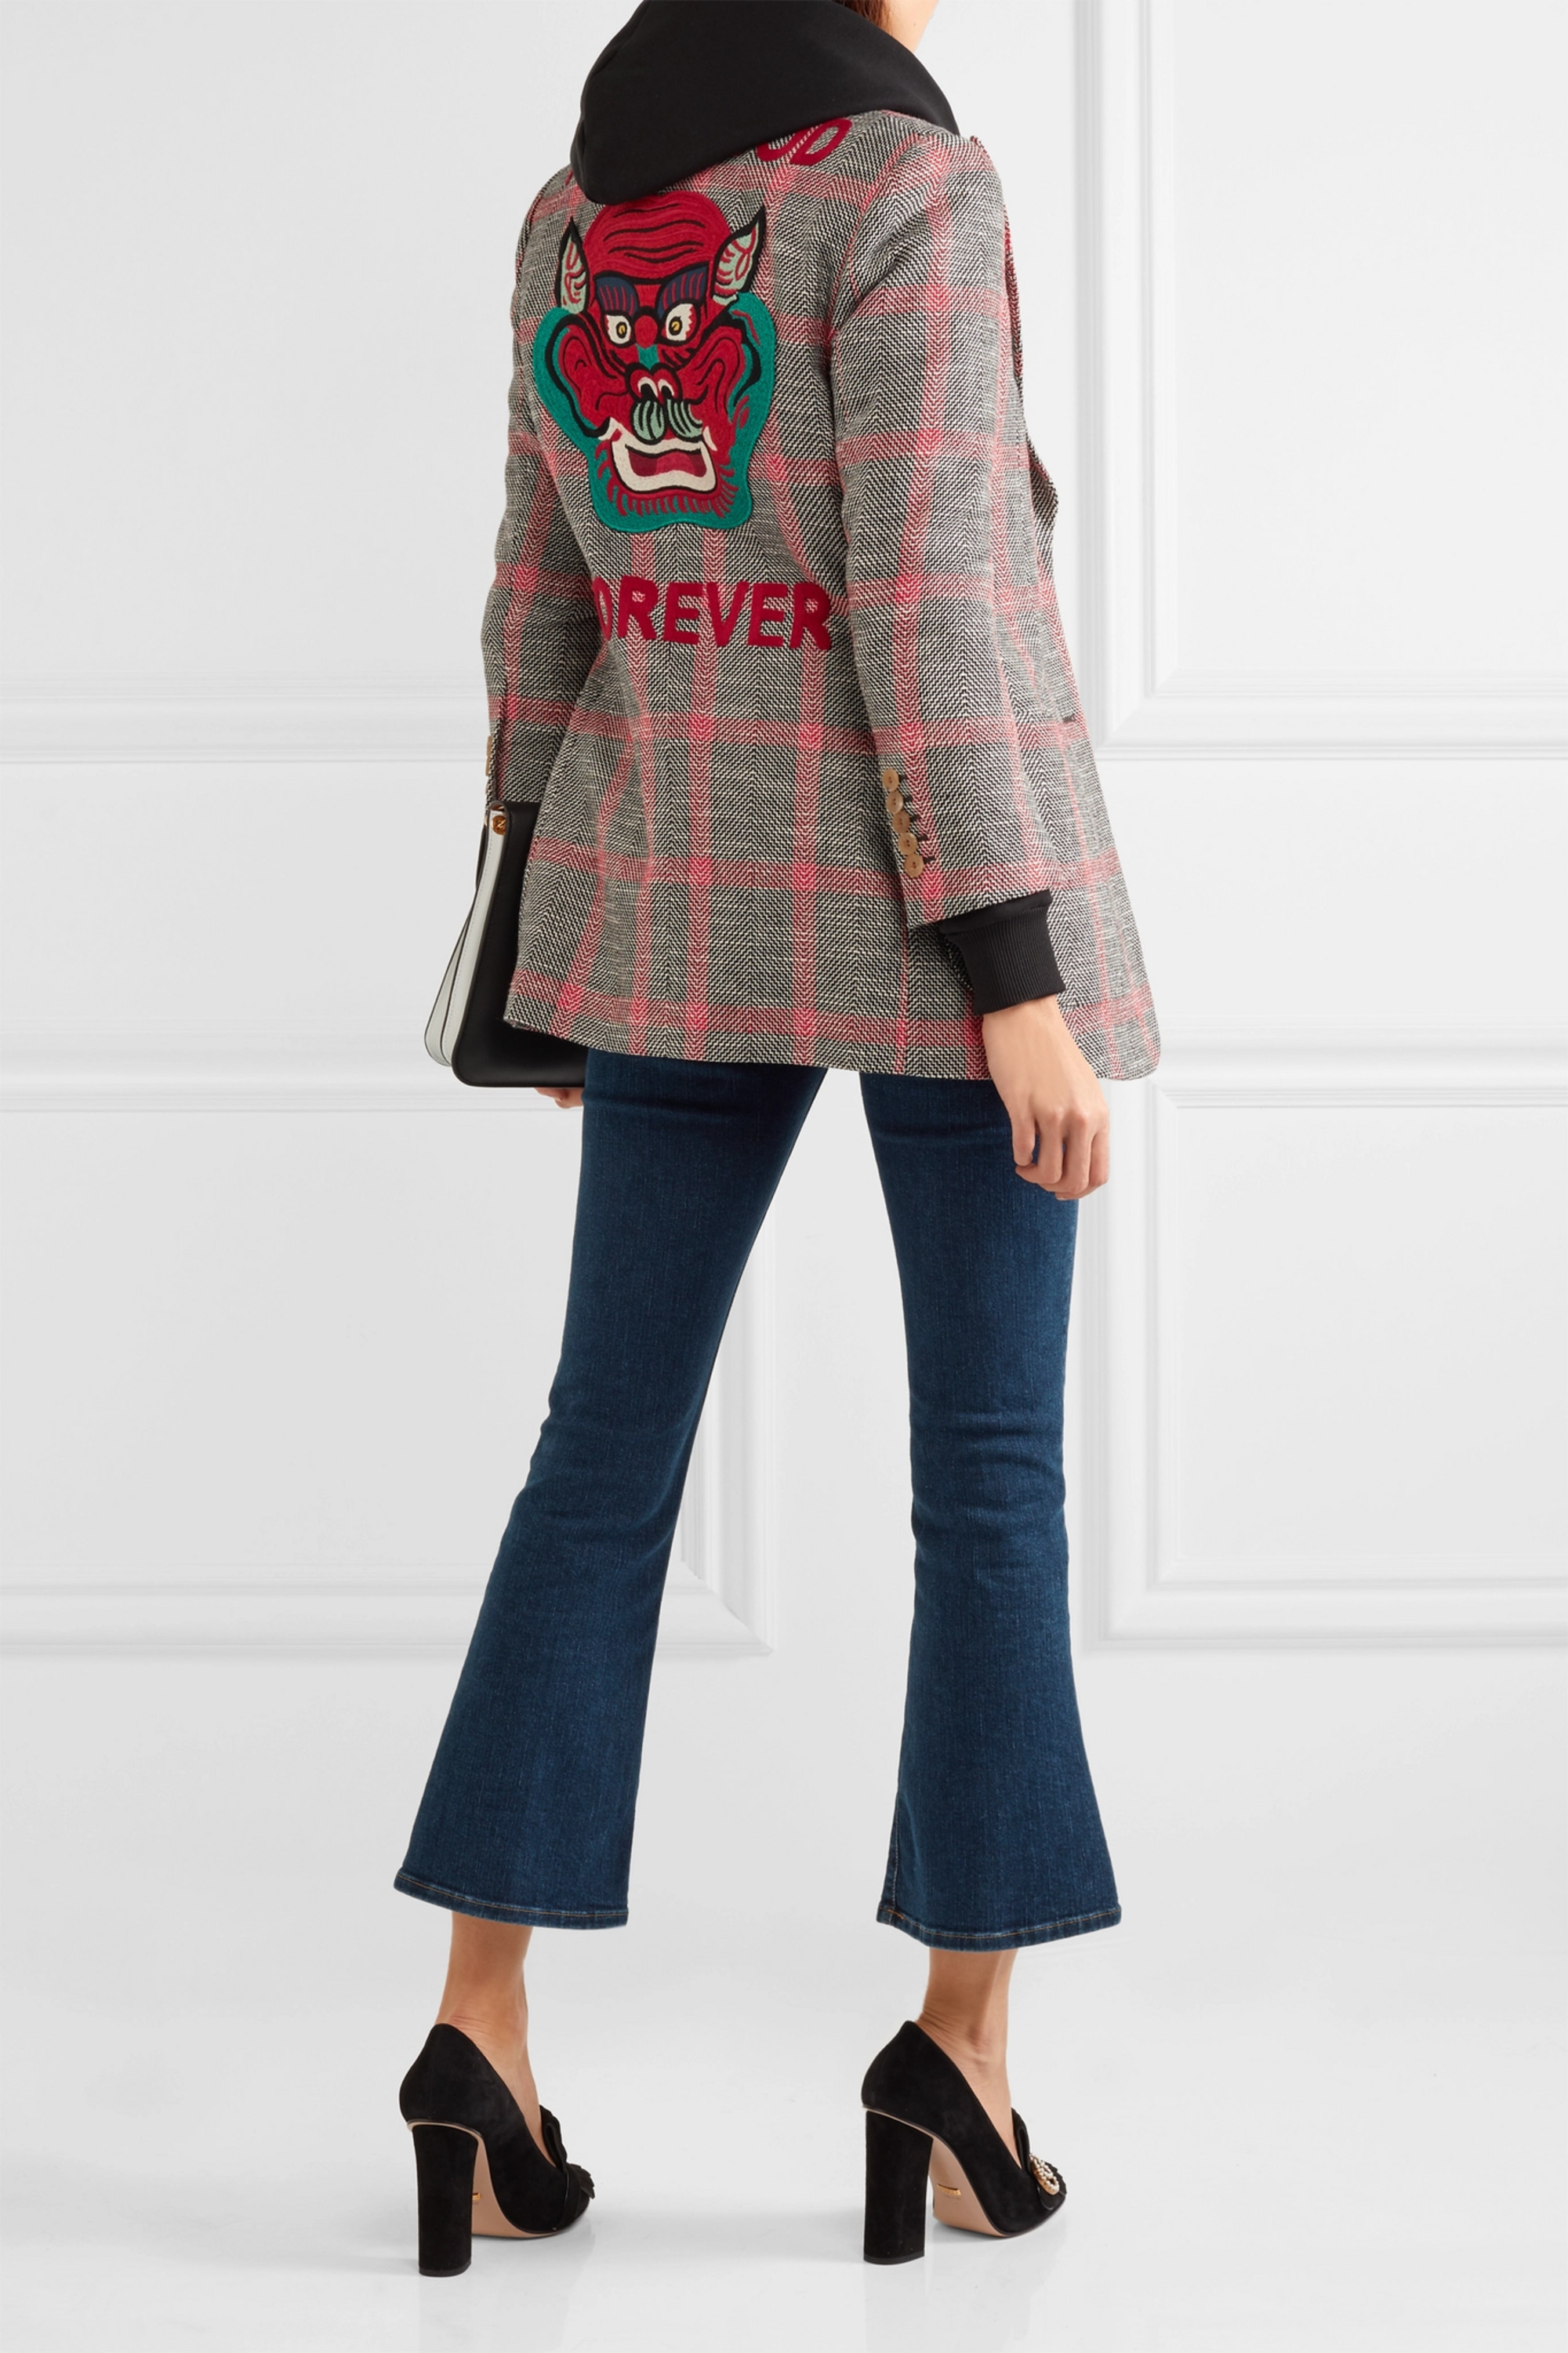 Gucci Appliquéd checked wool-blend tweed blazer